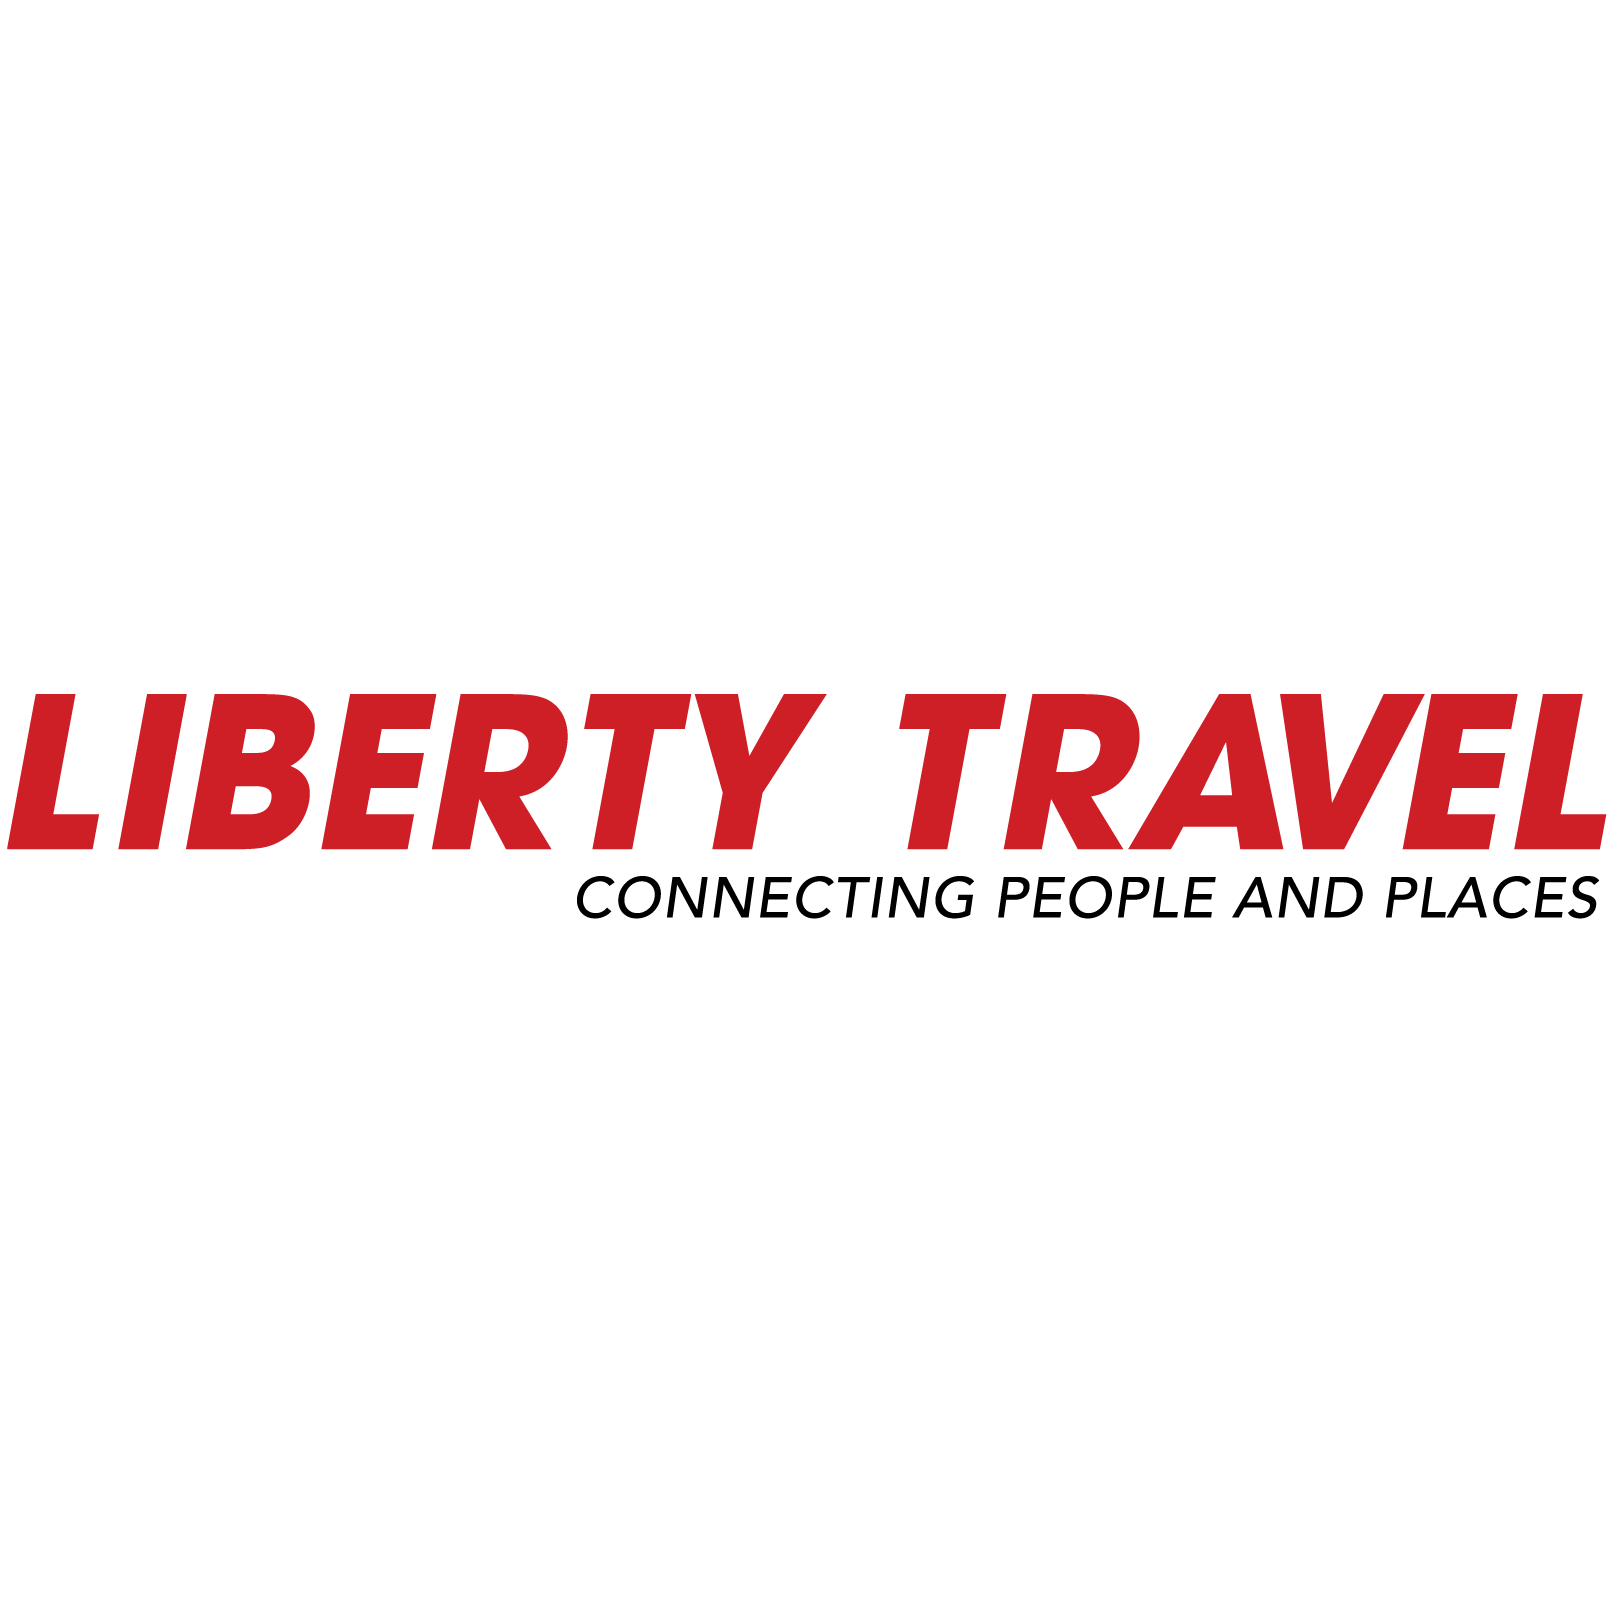 Liberty Travel - Hollywood, FL - Travel Agencies & Ticketers